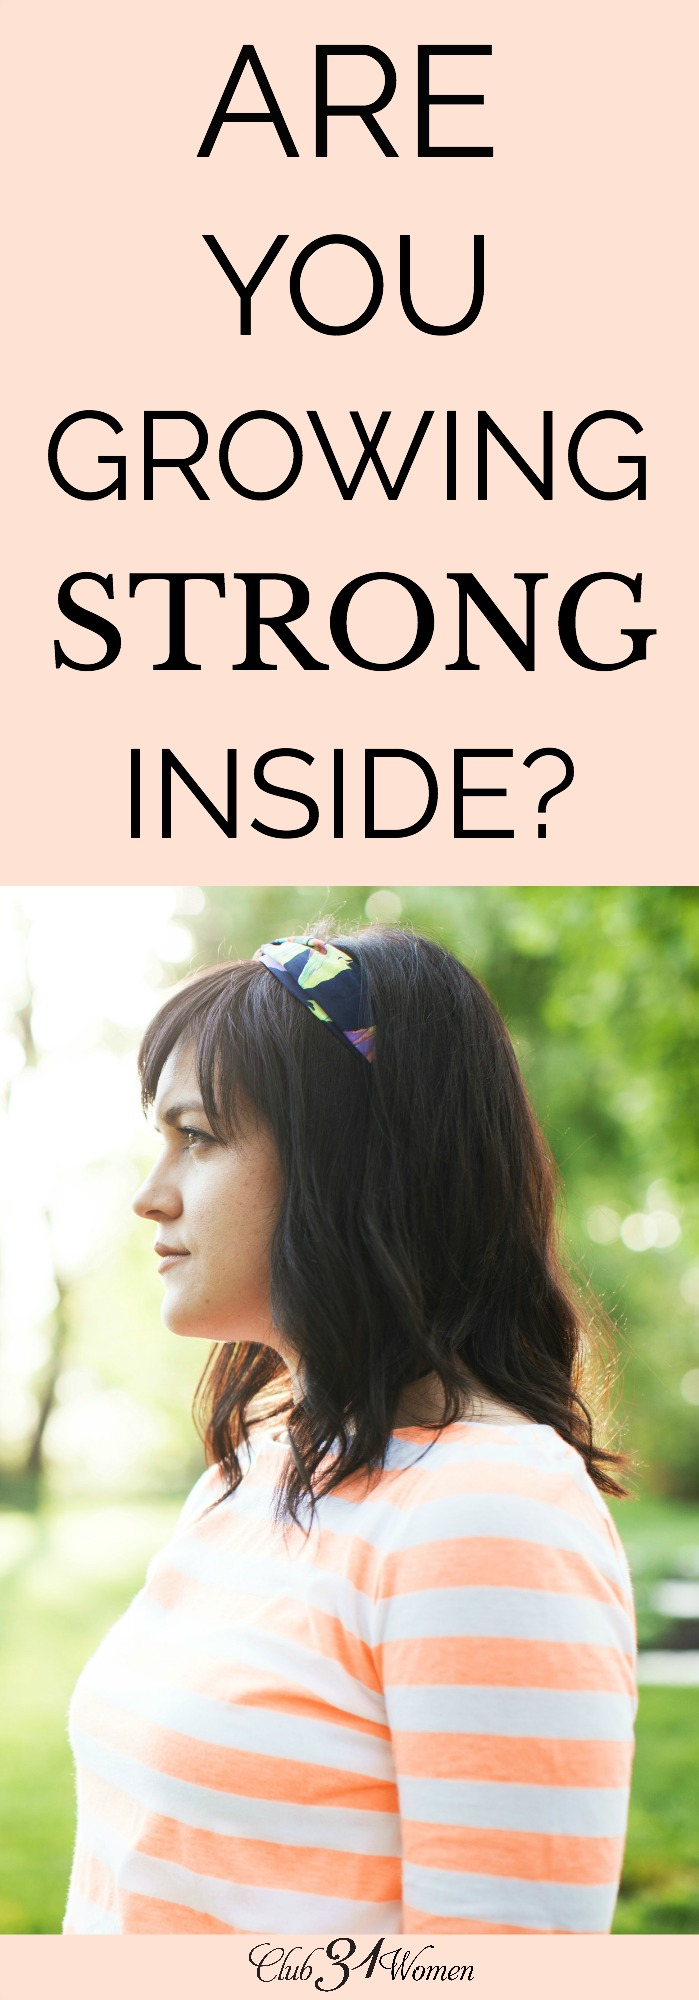 Are you growing strong spiritually? Here are a few ways to ensure you're exercising your spiritual muscles so you can become a godly woman of strength. via @Club31Women